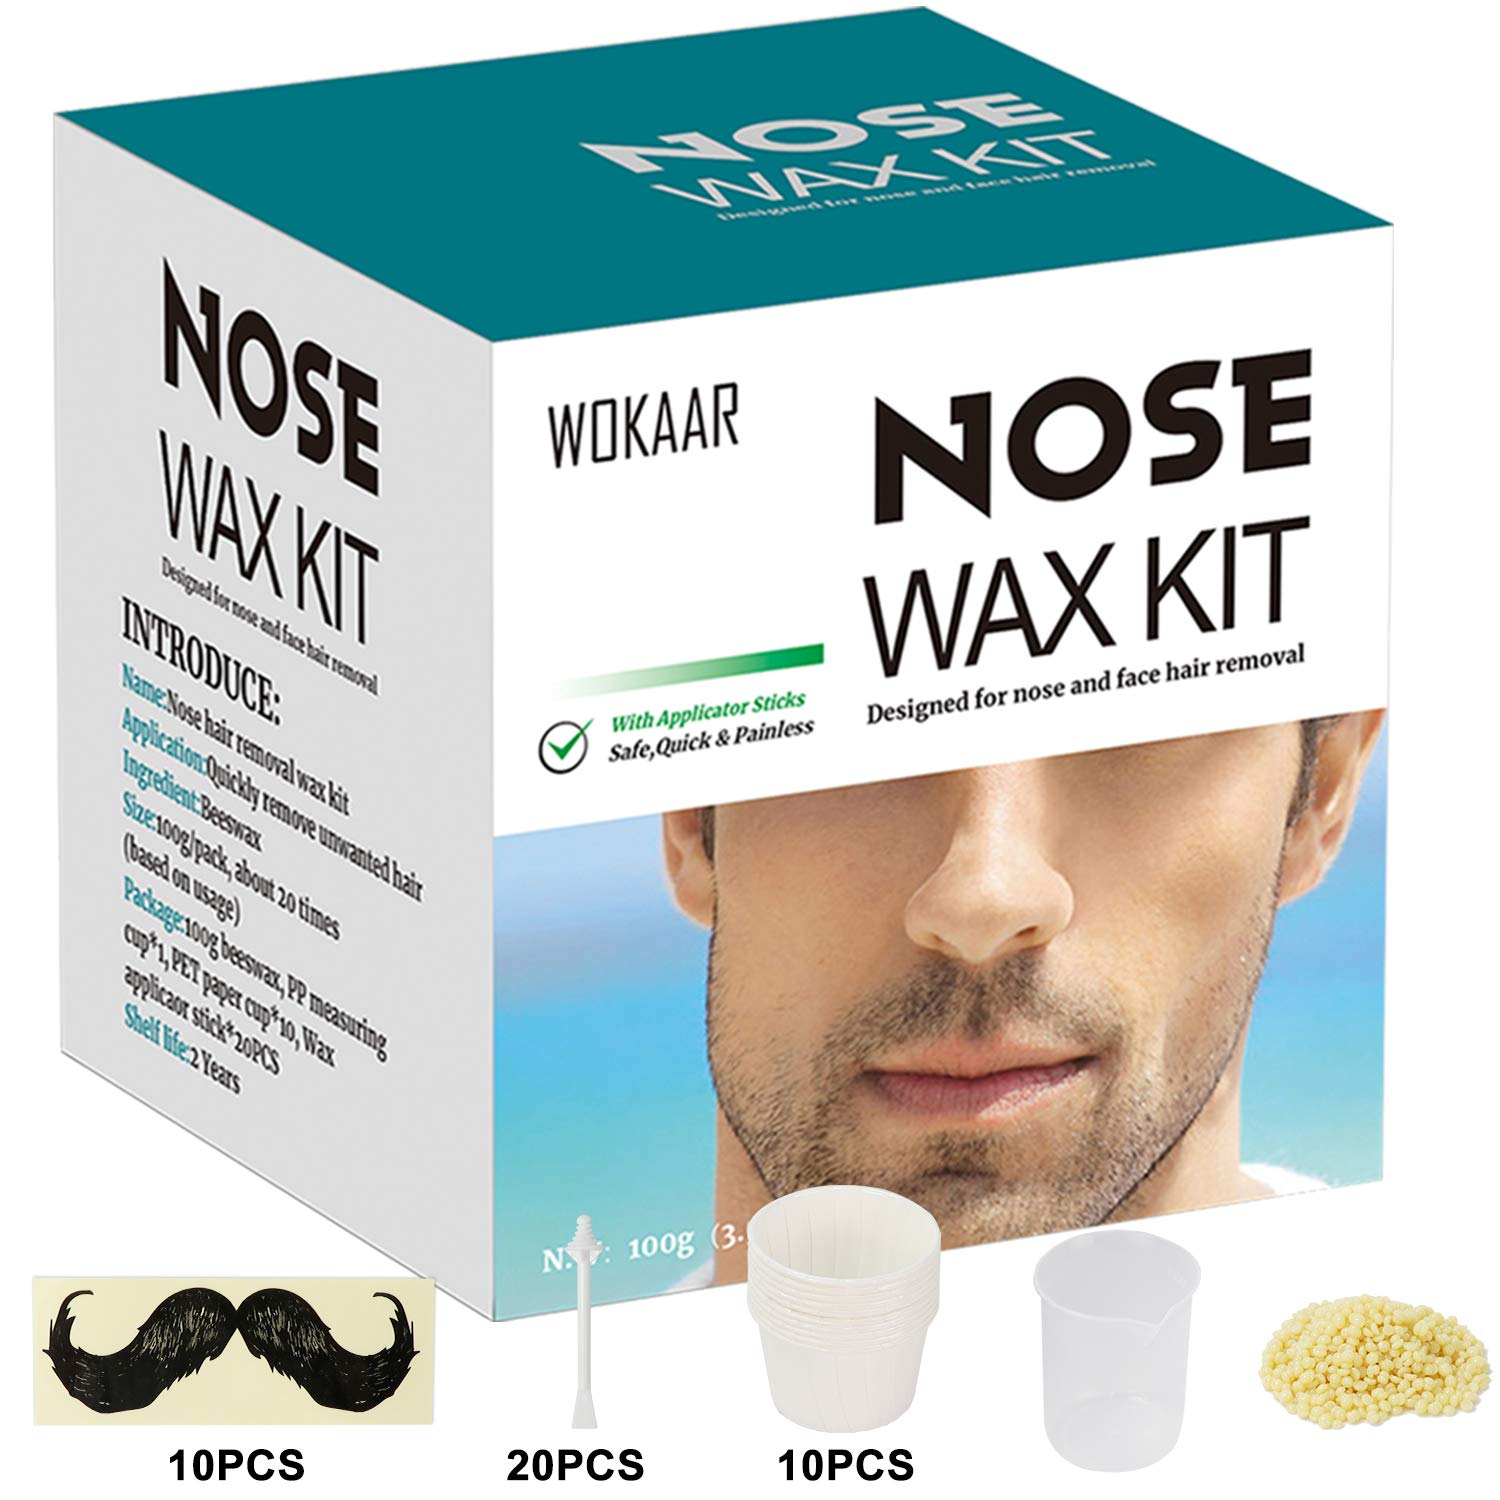 Nose Wax Kit for Men and Women